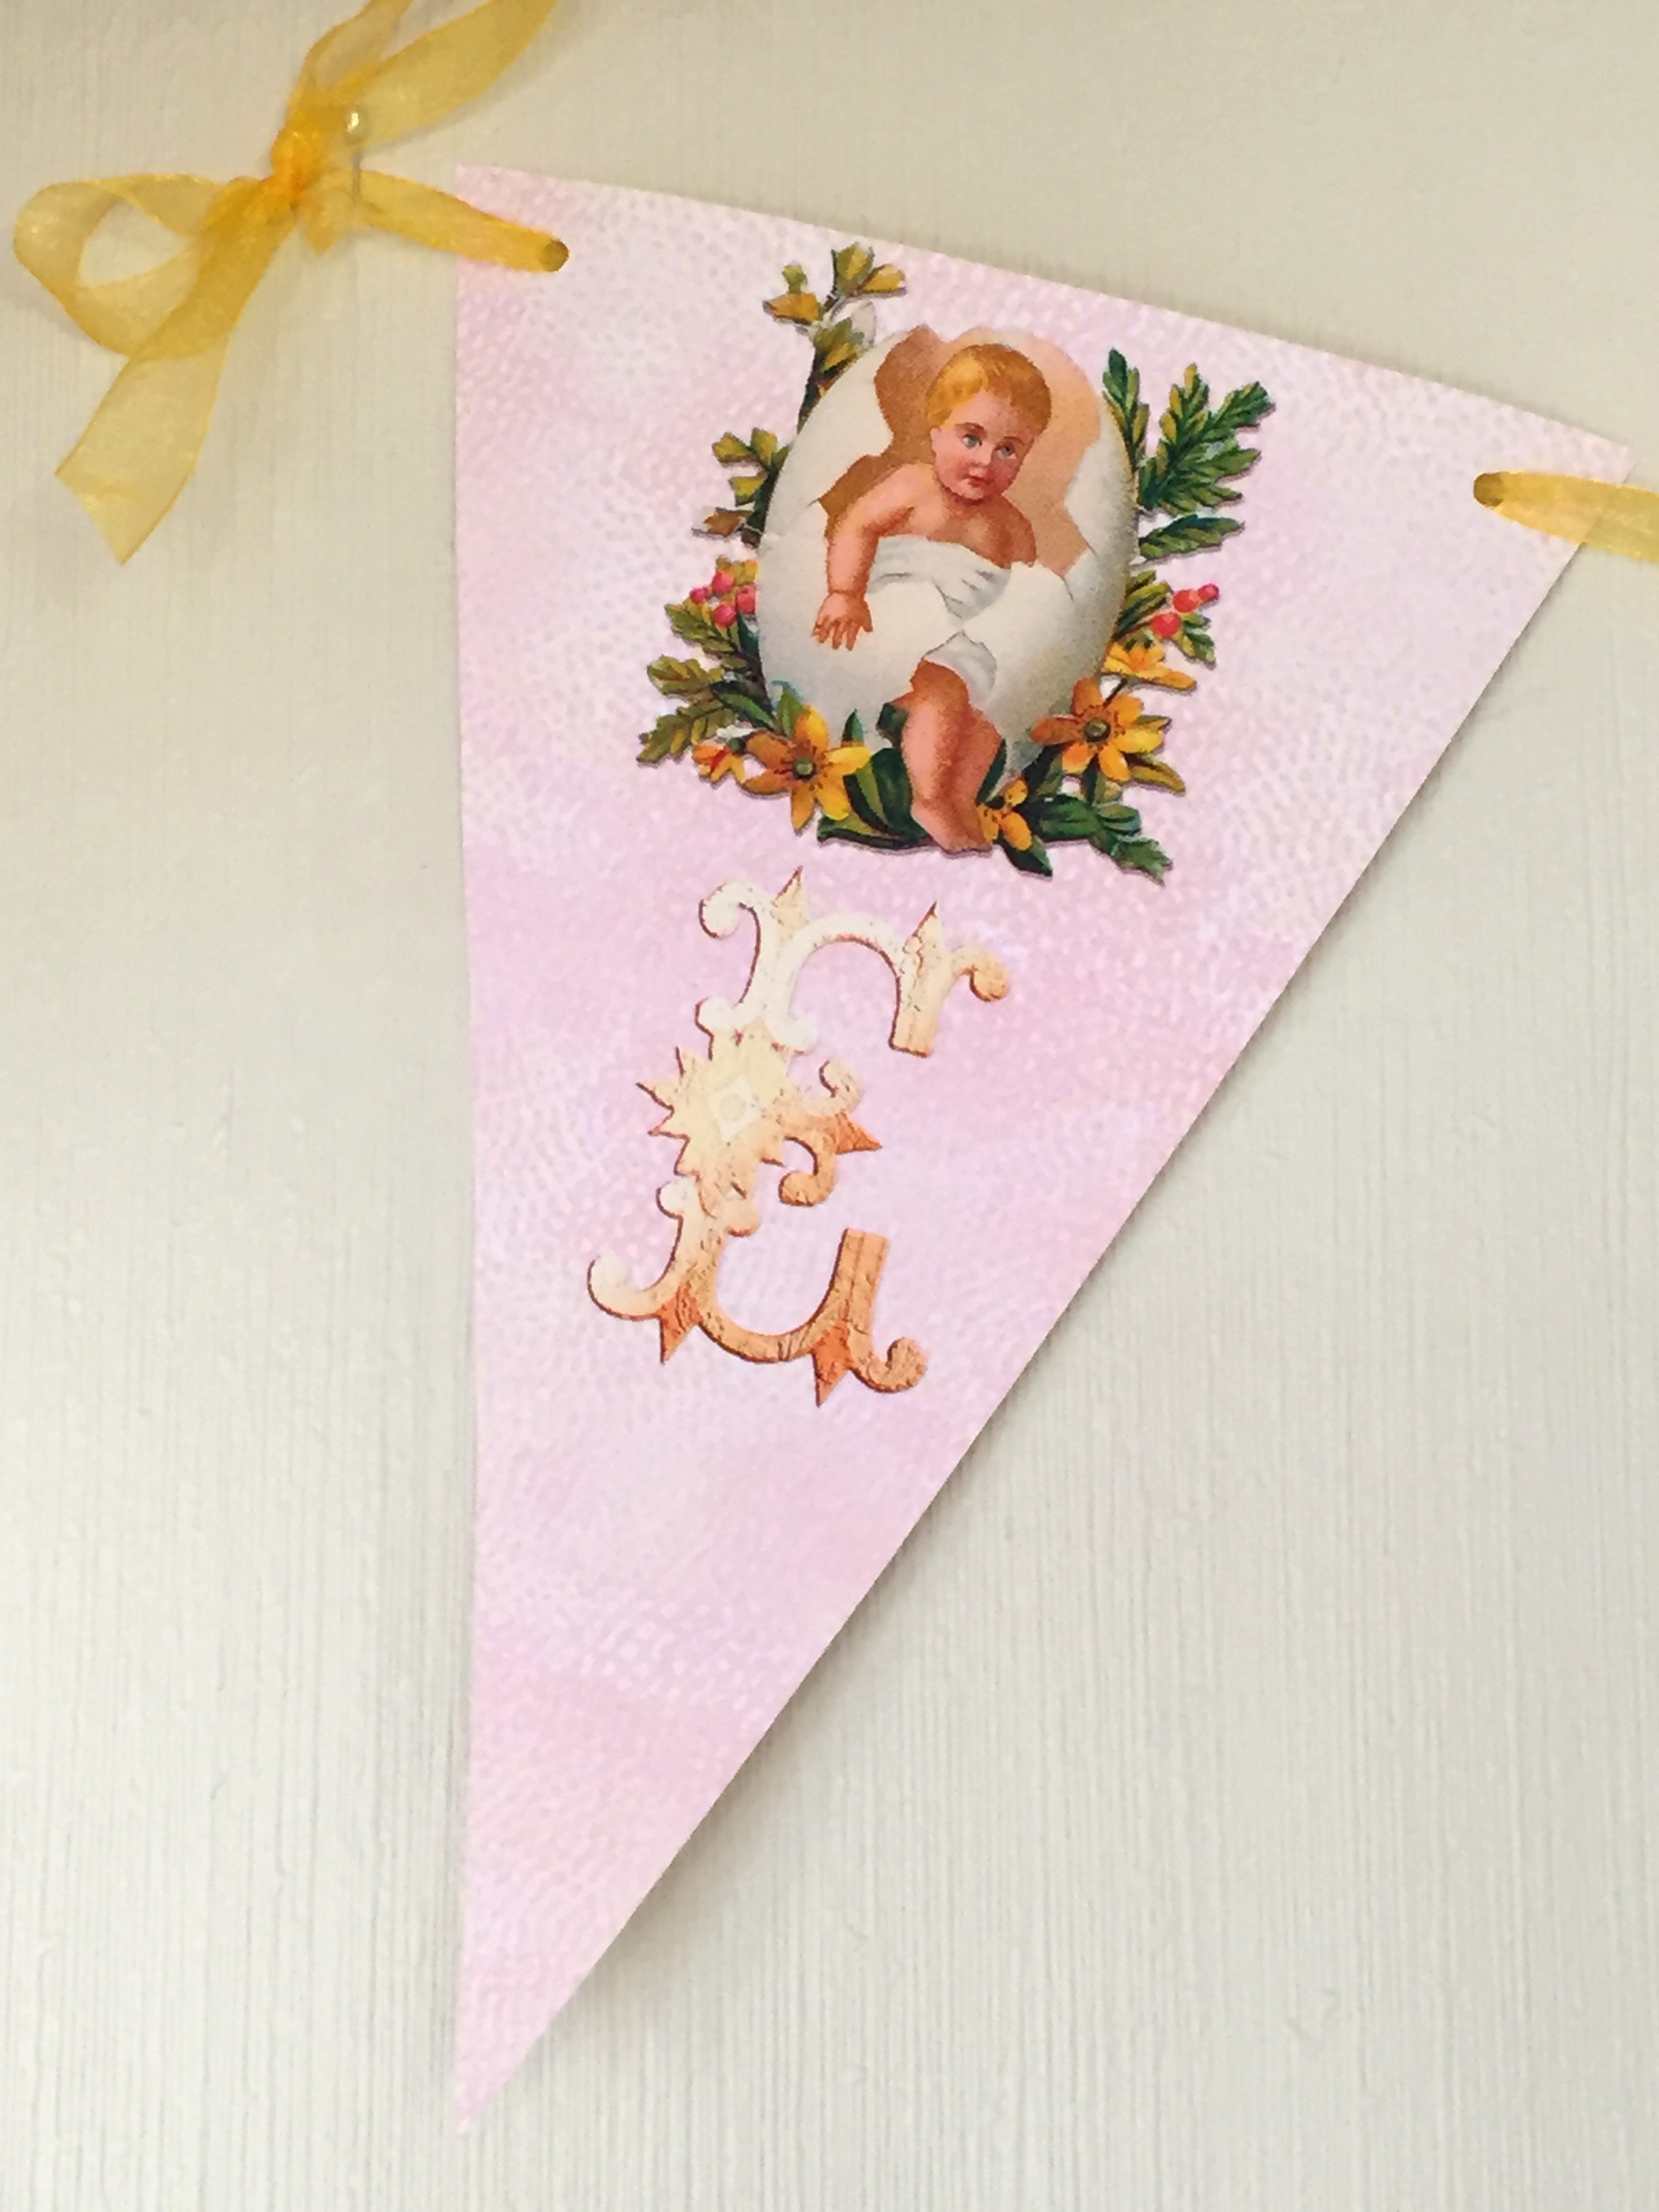 Cute Easter Egg Wallpaper Vintage Easter Egg Babies Bunting Wings Of Whimsy